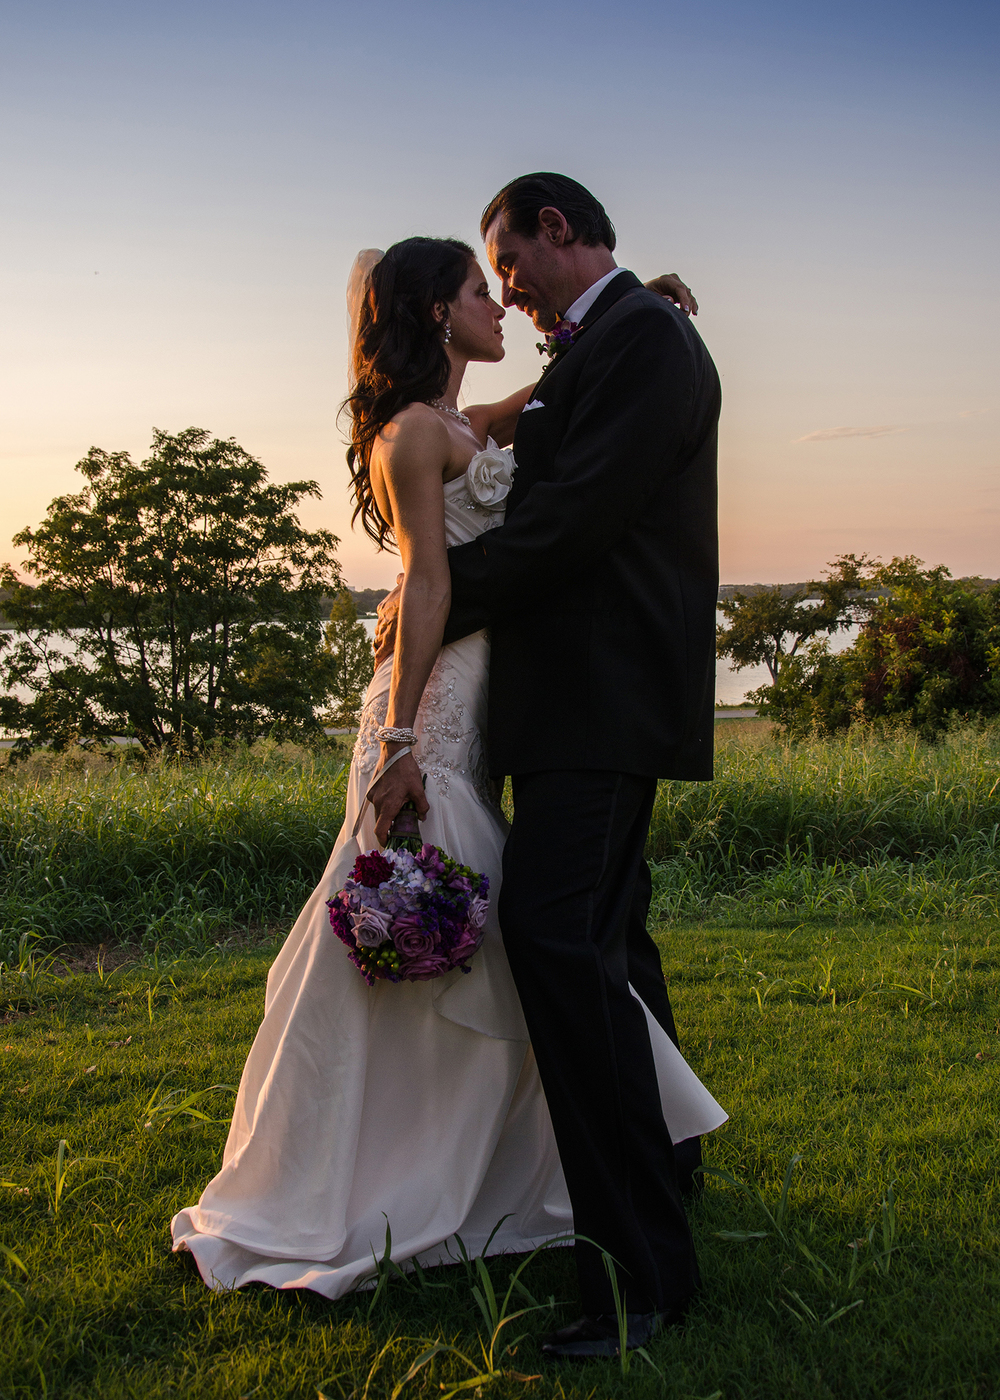 wedding_photographer_lexington_ky_studio_walz158.jpg